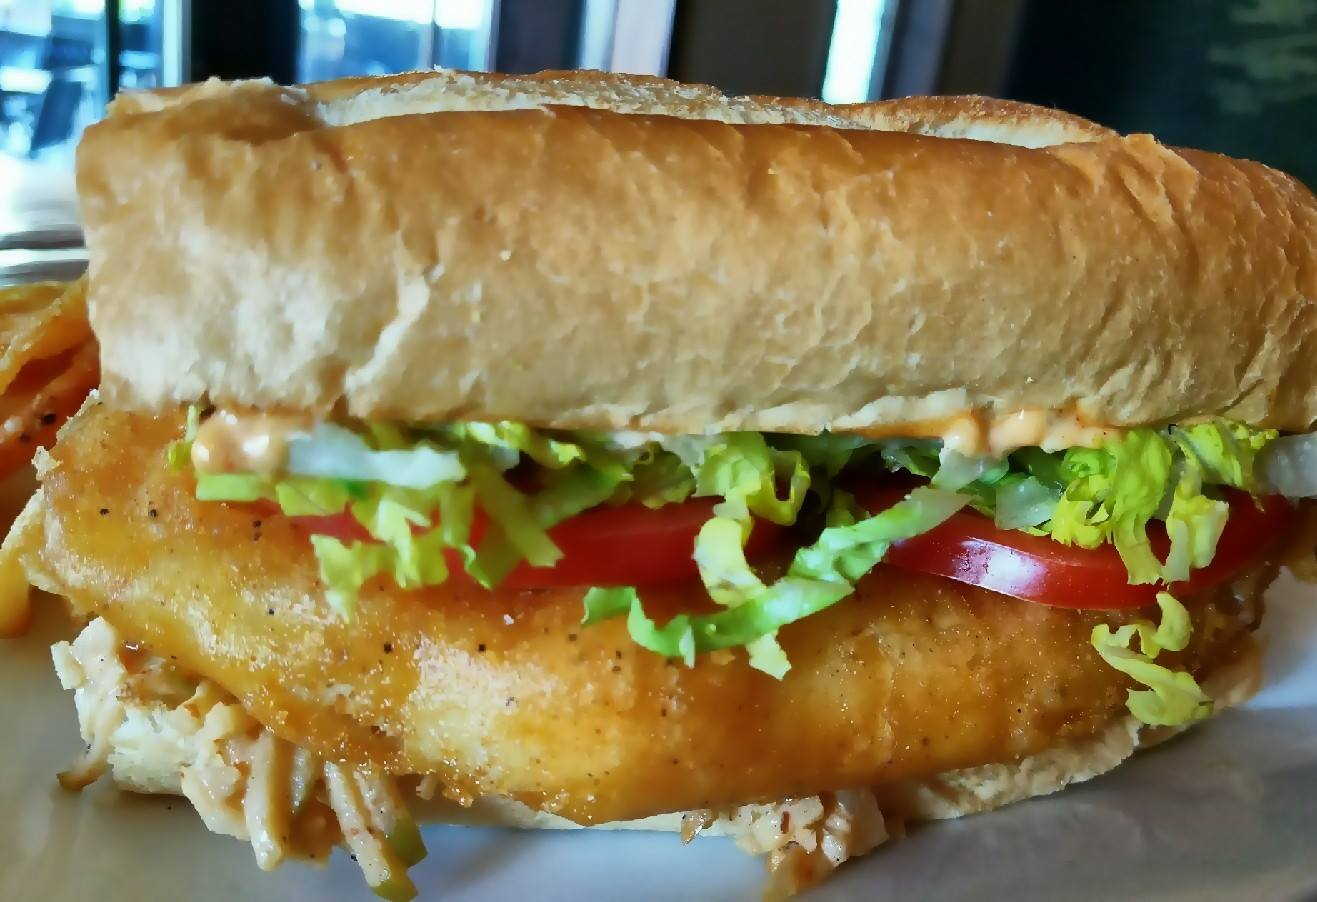 fried fish sandwich in a large sub